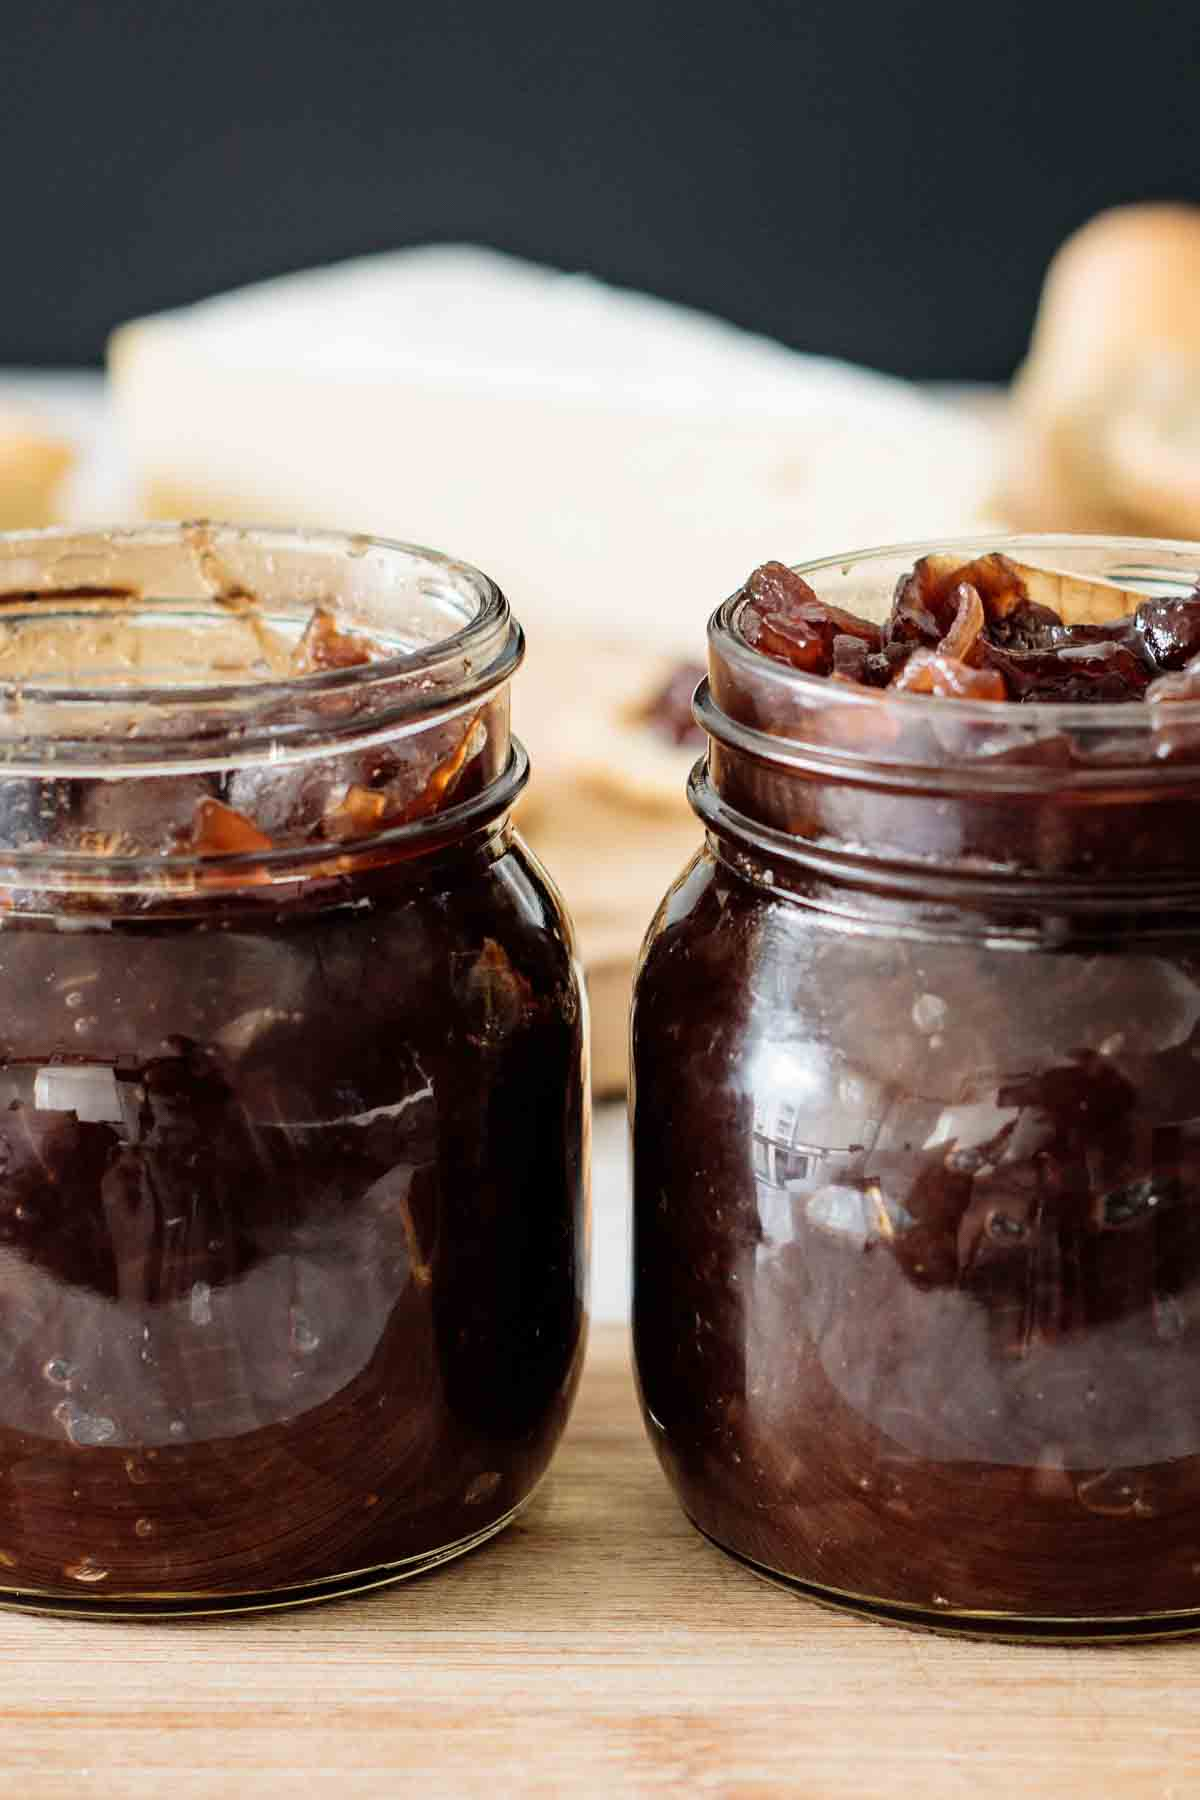 2 jars full of chutney over a wooden board.